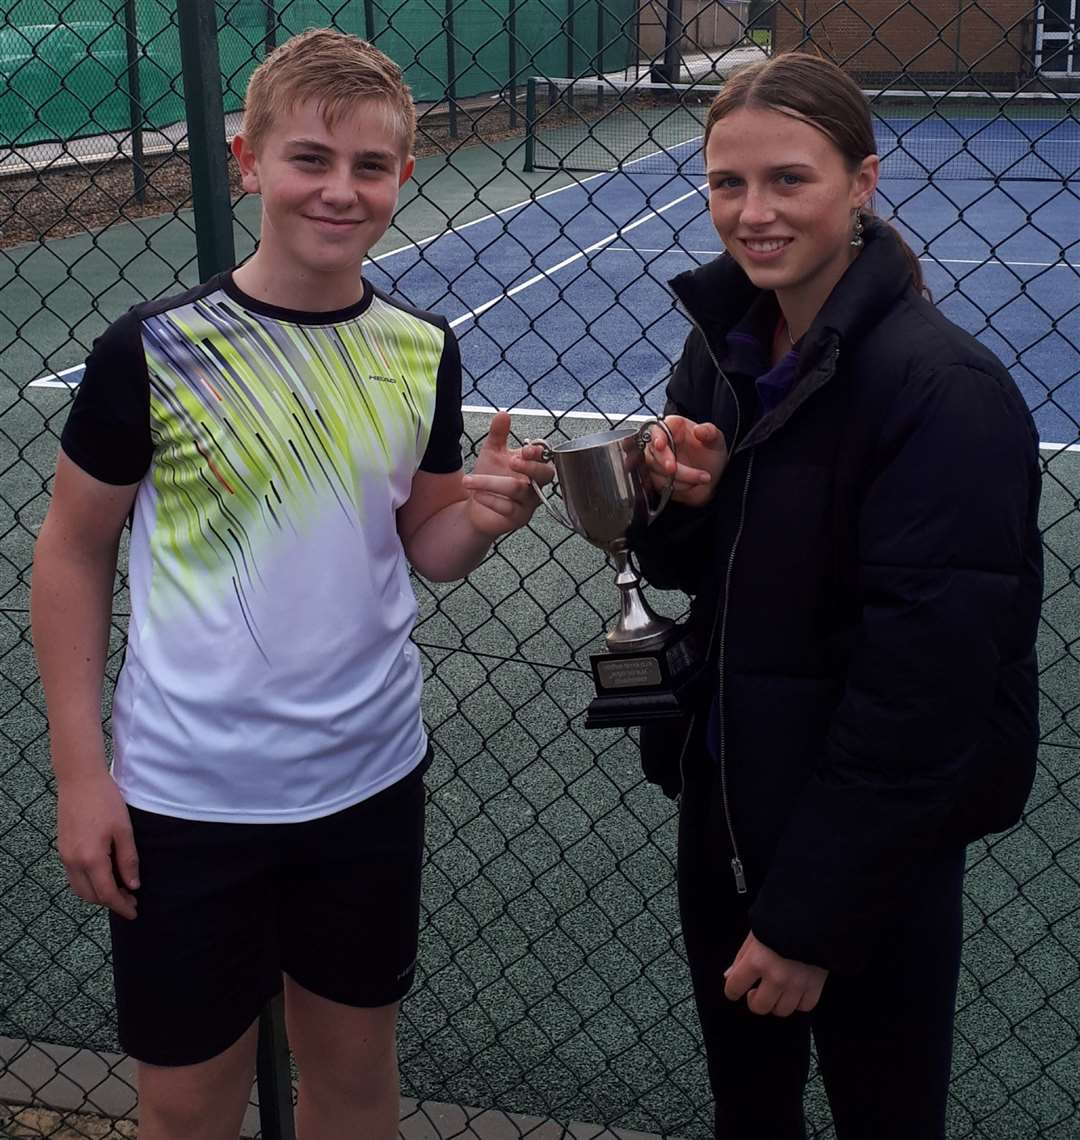 Alice Gamman and Chase Burgess were the mixed doubles winners.